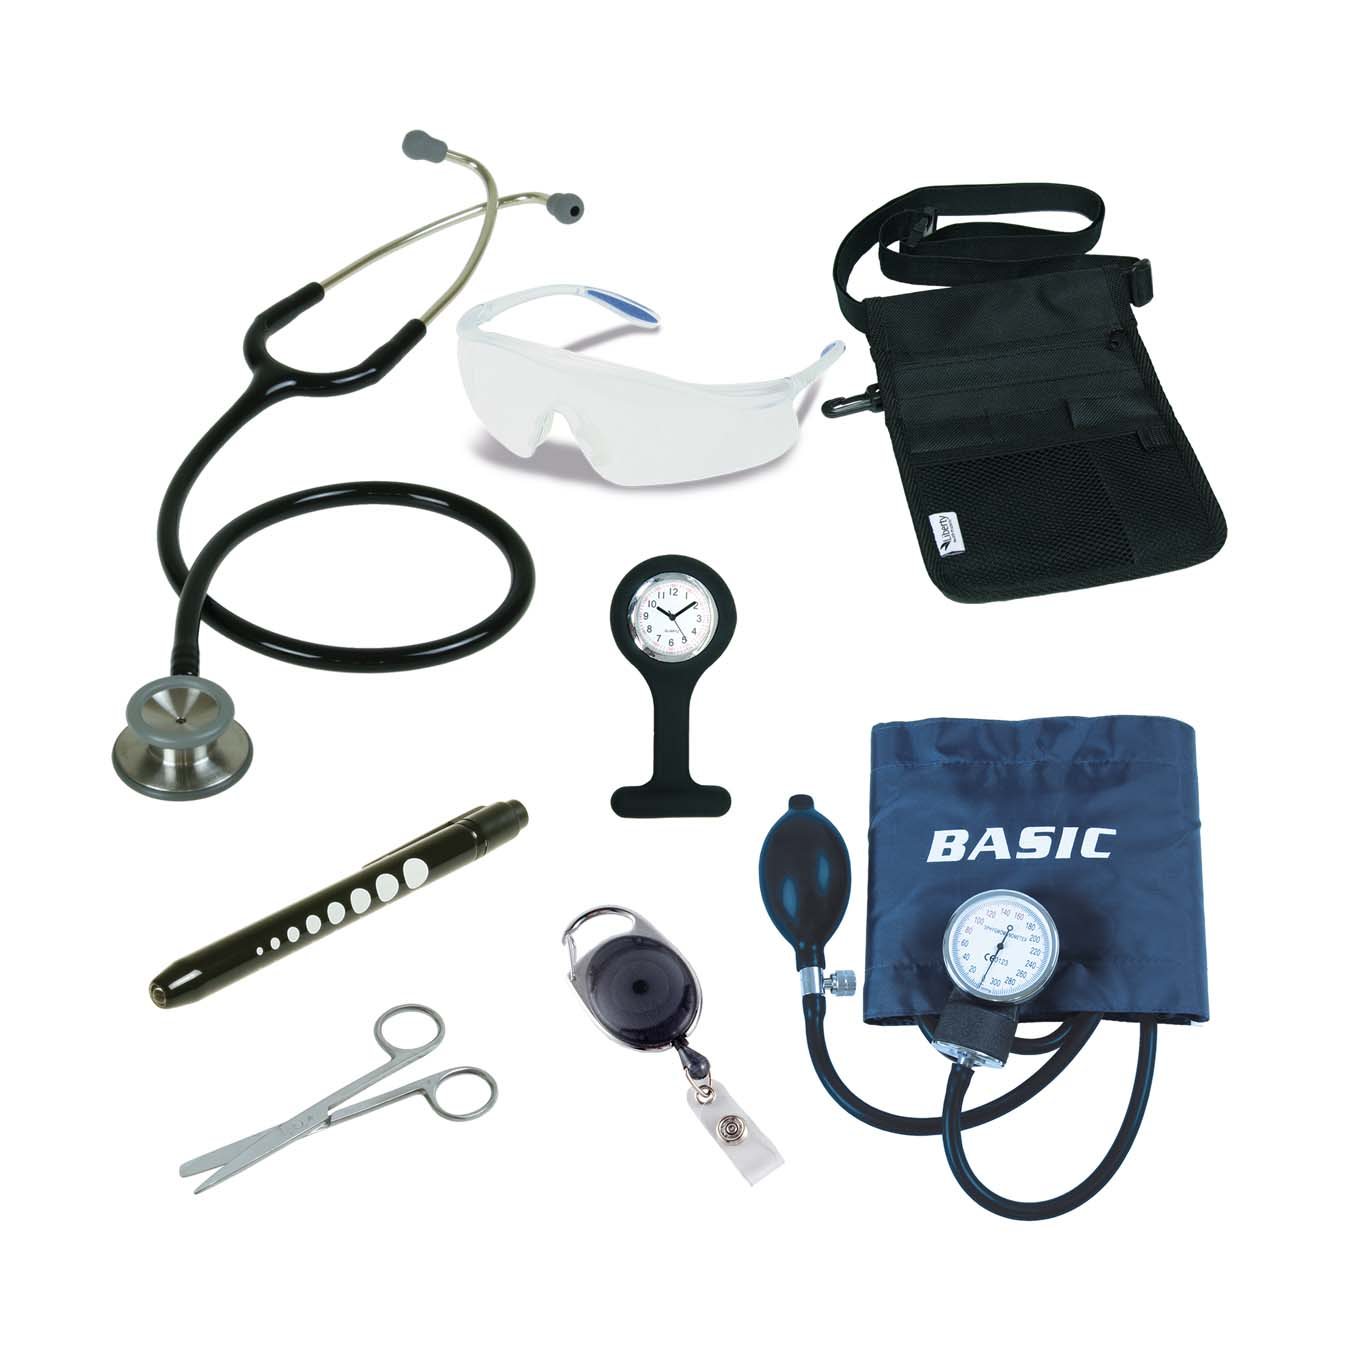 NKBOFIBK3_Nurses-Kit-Black